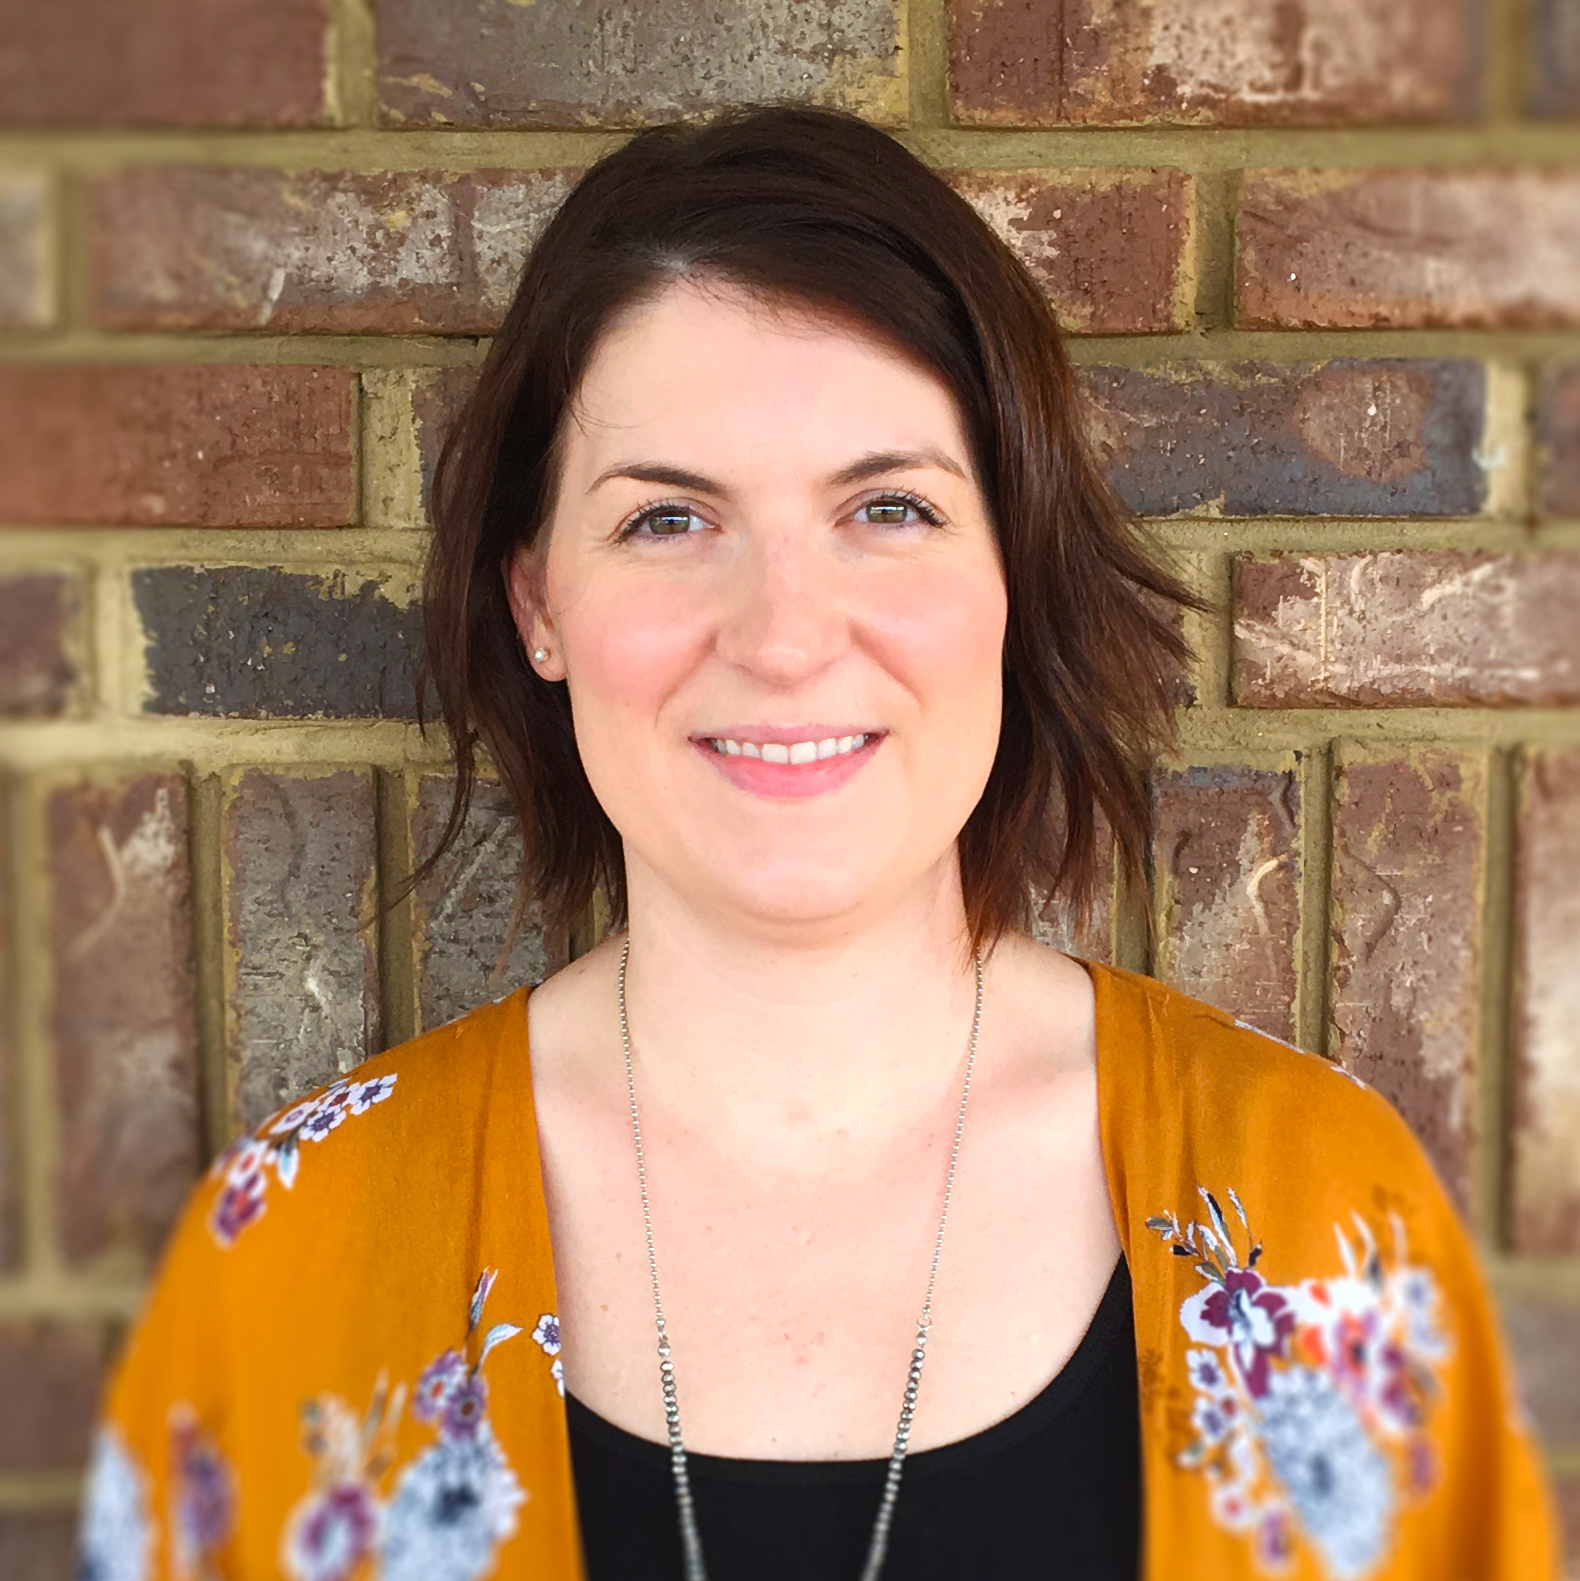 Rachel Chumney - Worship Leader   Rachel was called into ministry when she was just a teenager. She has a passion to worship the Lord and to lead others into His presence. Each week she works to see that we decrease and God increases in our worship!